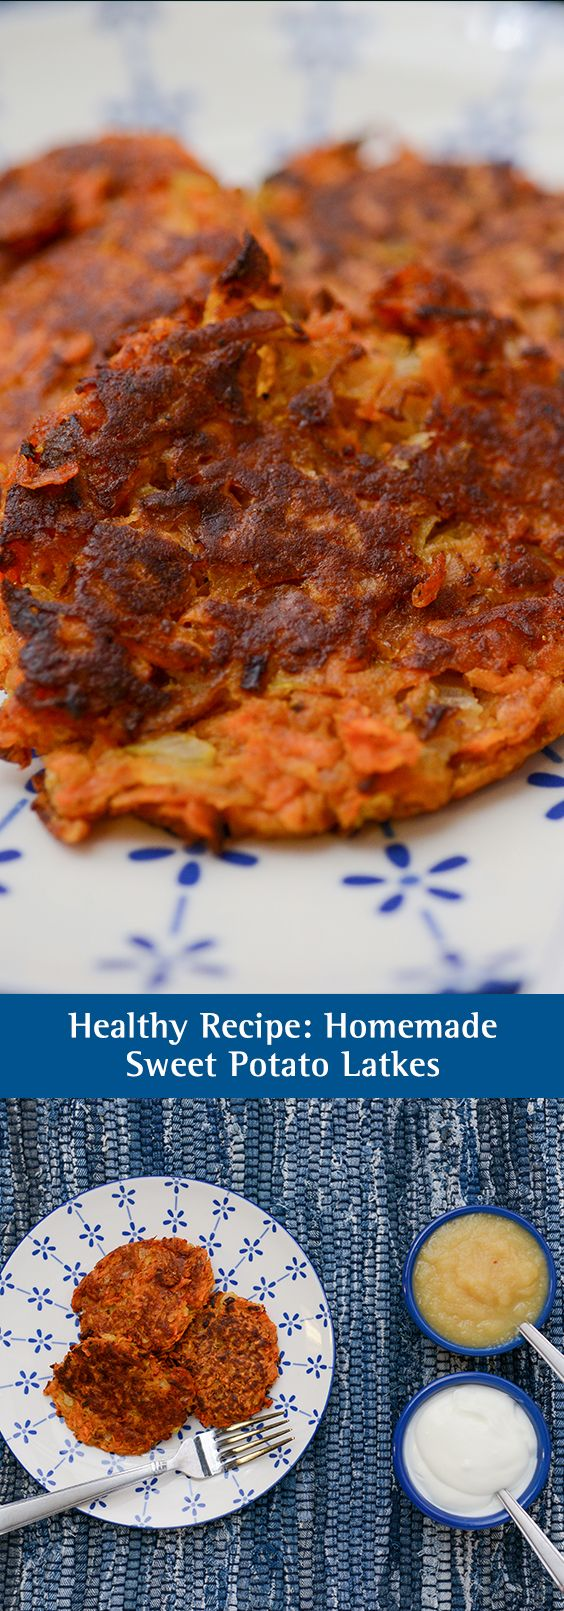 Healthy Recipe: Homemade Sweet Potato Latkes. Whether you call them latkes or pancakes, these shredded potato patties are part of many holiday traditions. To put a healthy twist on a classic favorite, try using sweet potatoes. Full of potassium, fiber and vitamin A, sweet potatoes add a healthy boost while preserving that tasty flavor you've come to know and love.